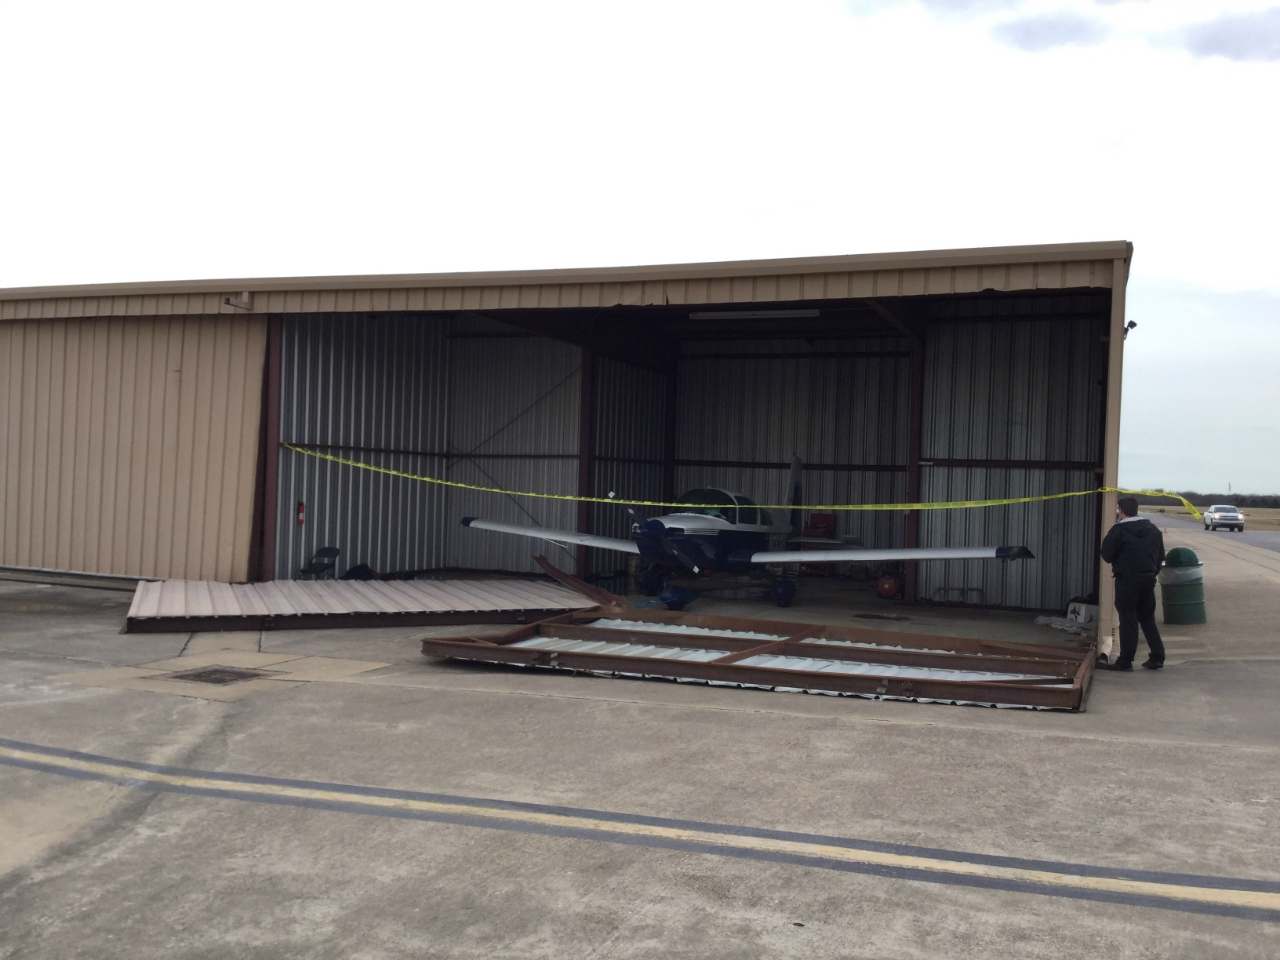 Wind damage at Grand Prairie Municipal Airport (estimated 80 mph)